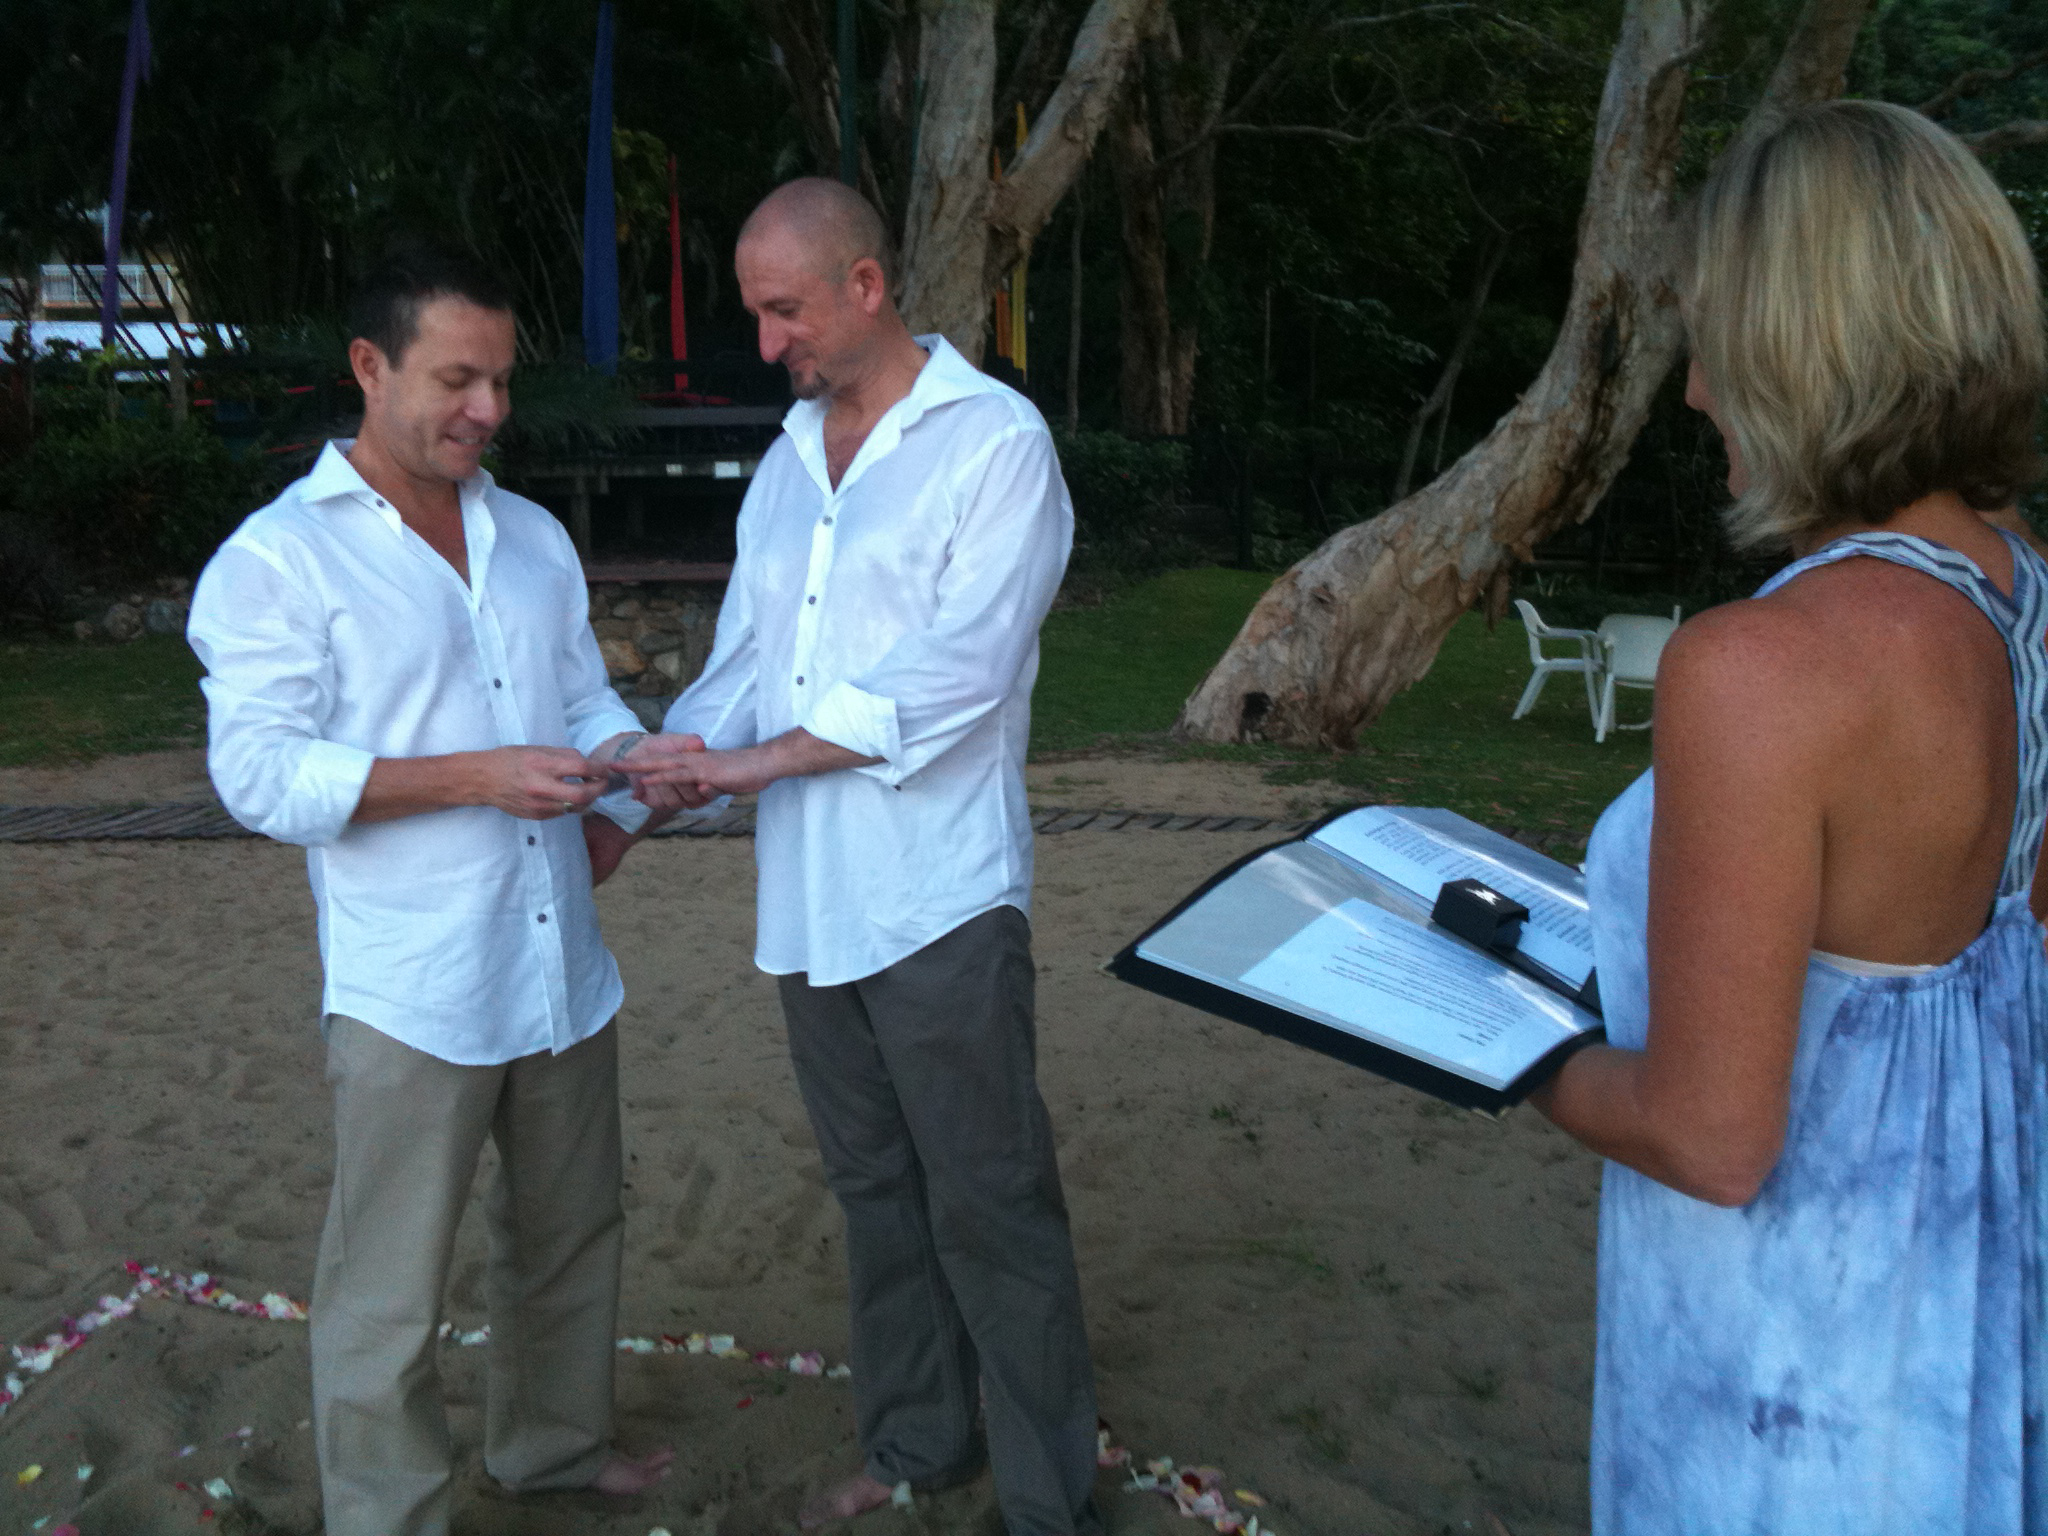 Marriage Celebrant Vicki Lever couple Nick & Craig